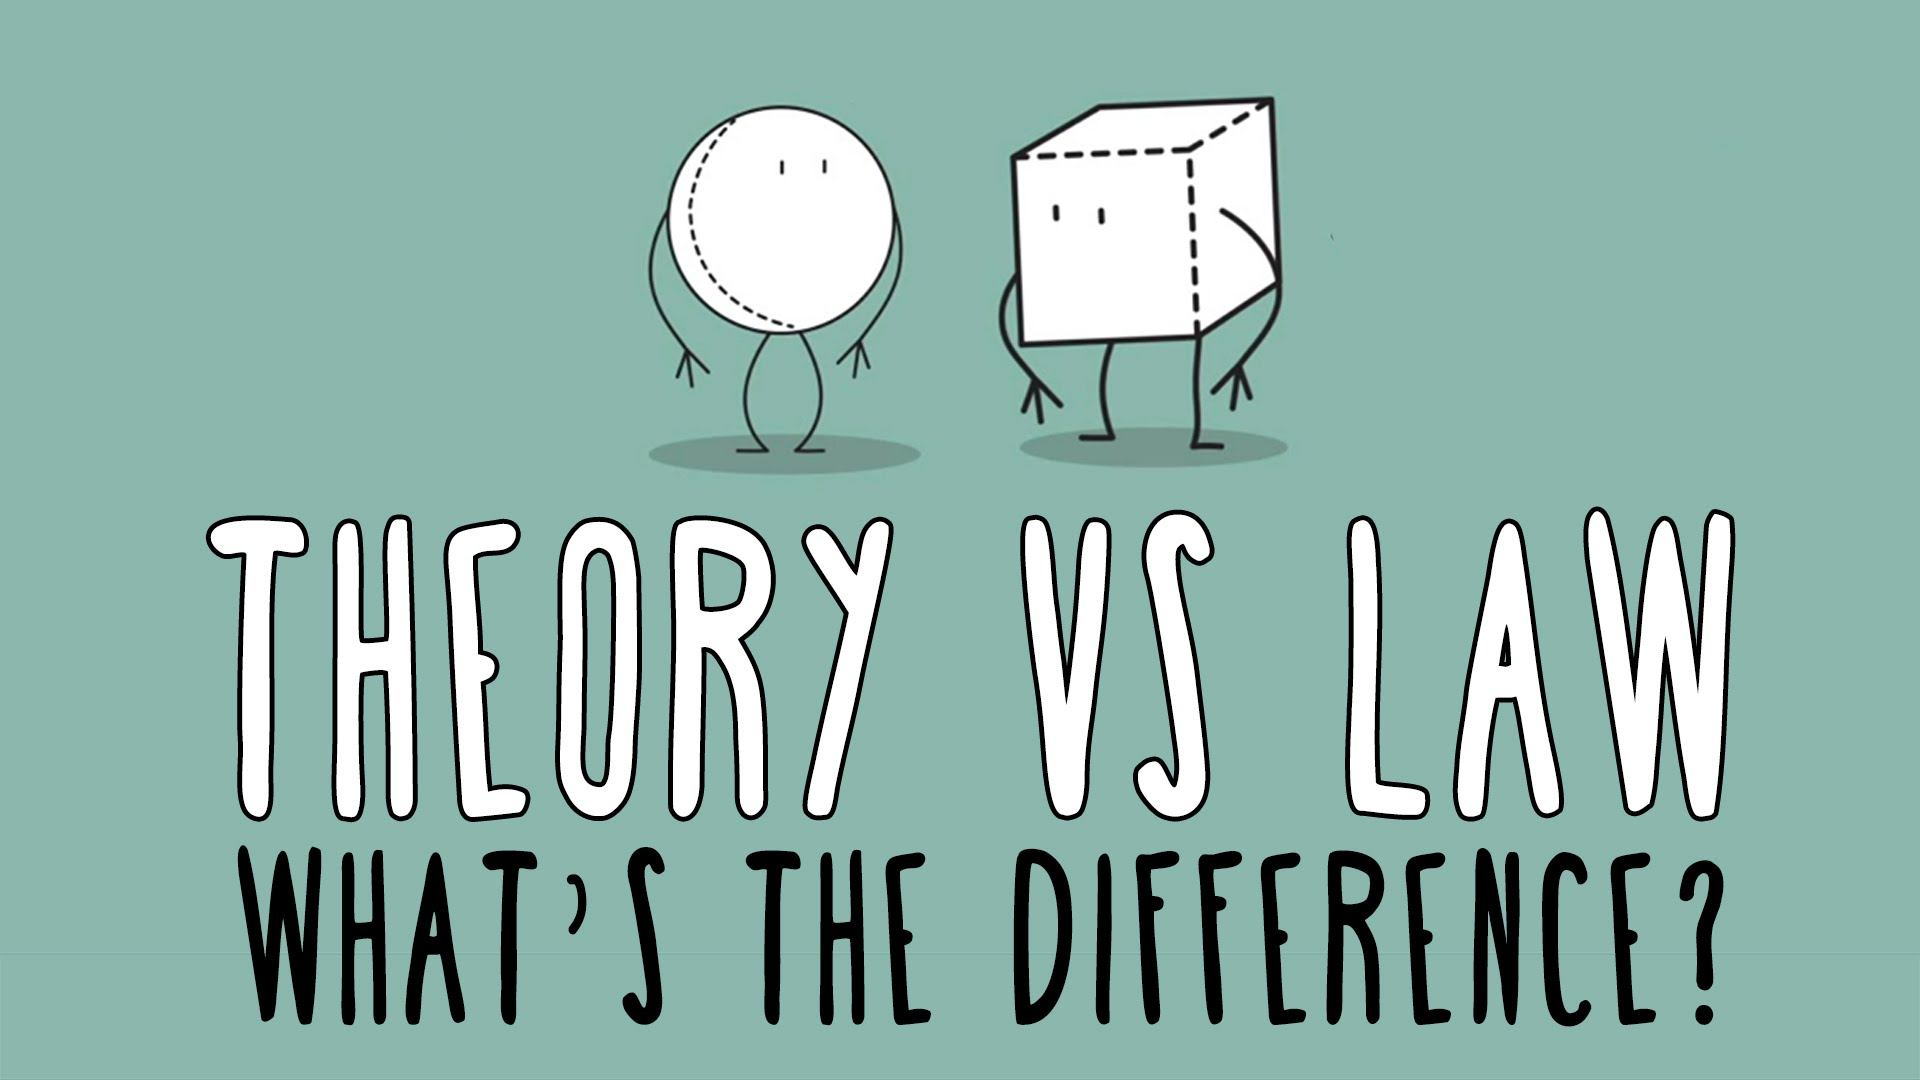 What's the difference between a scientific law and theory?